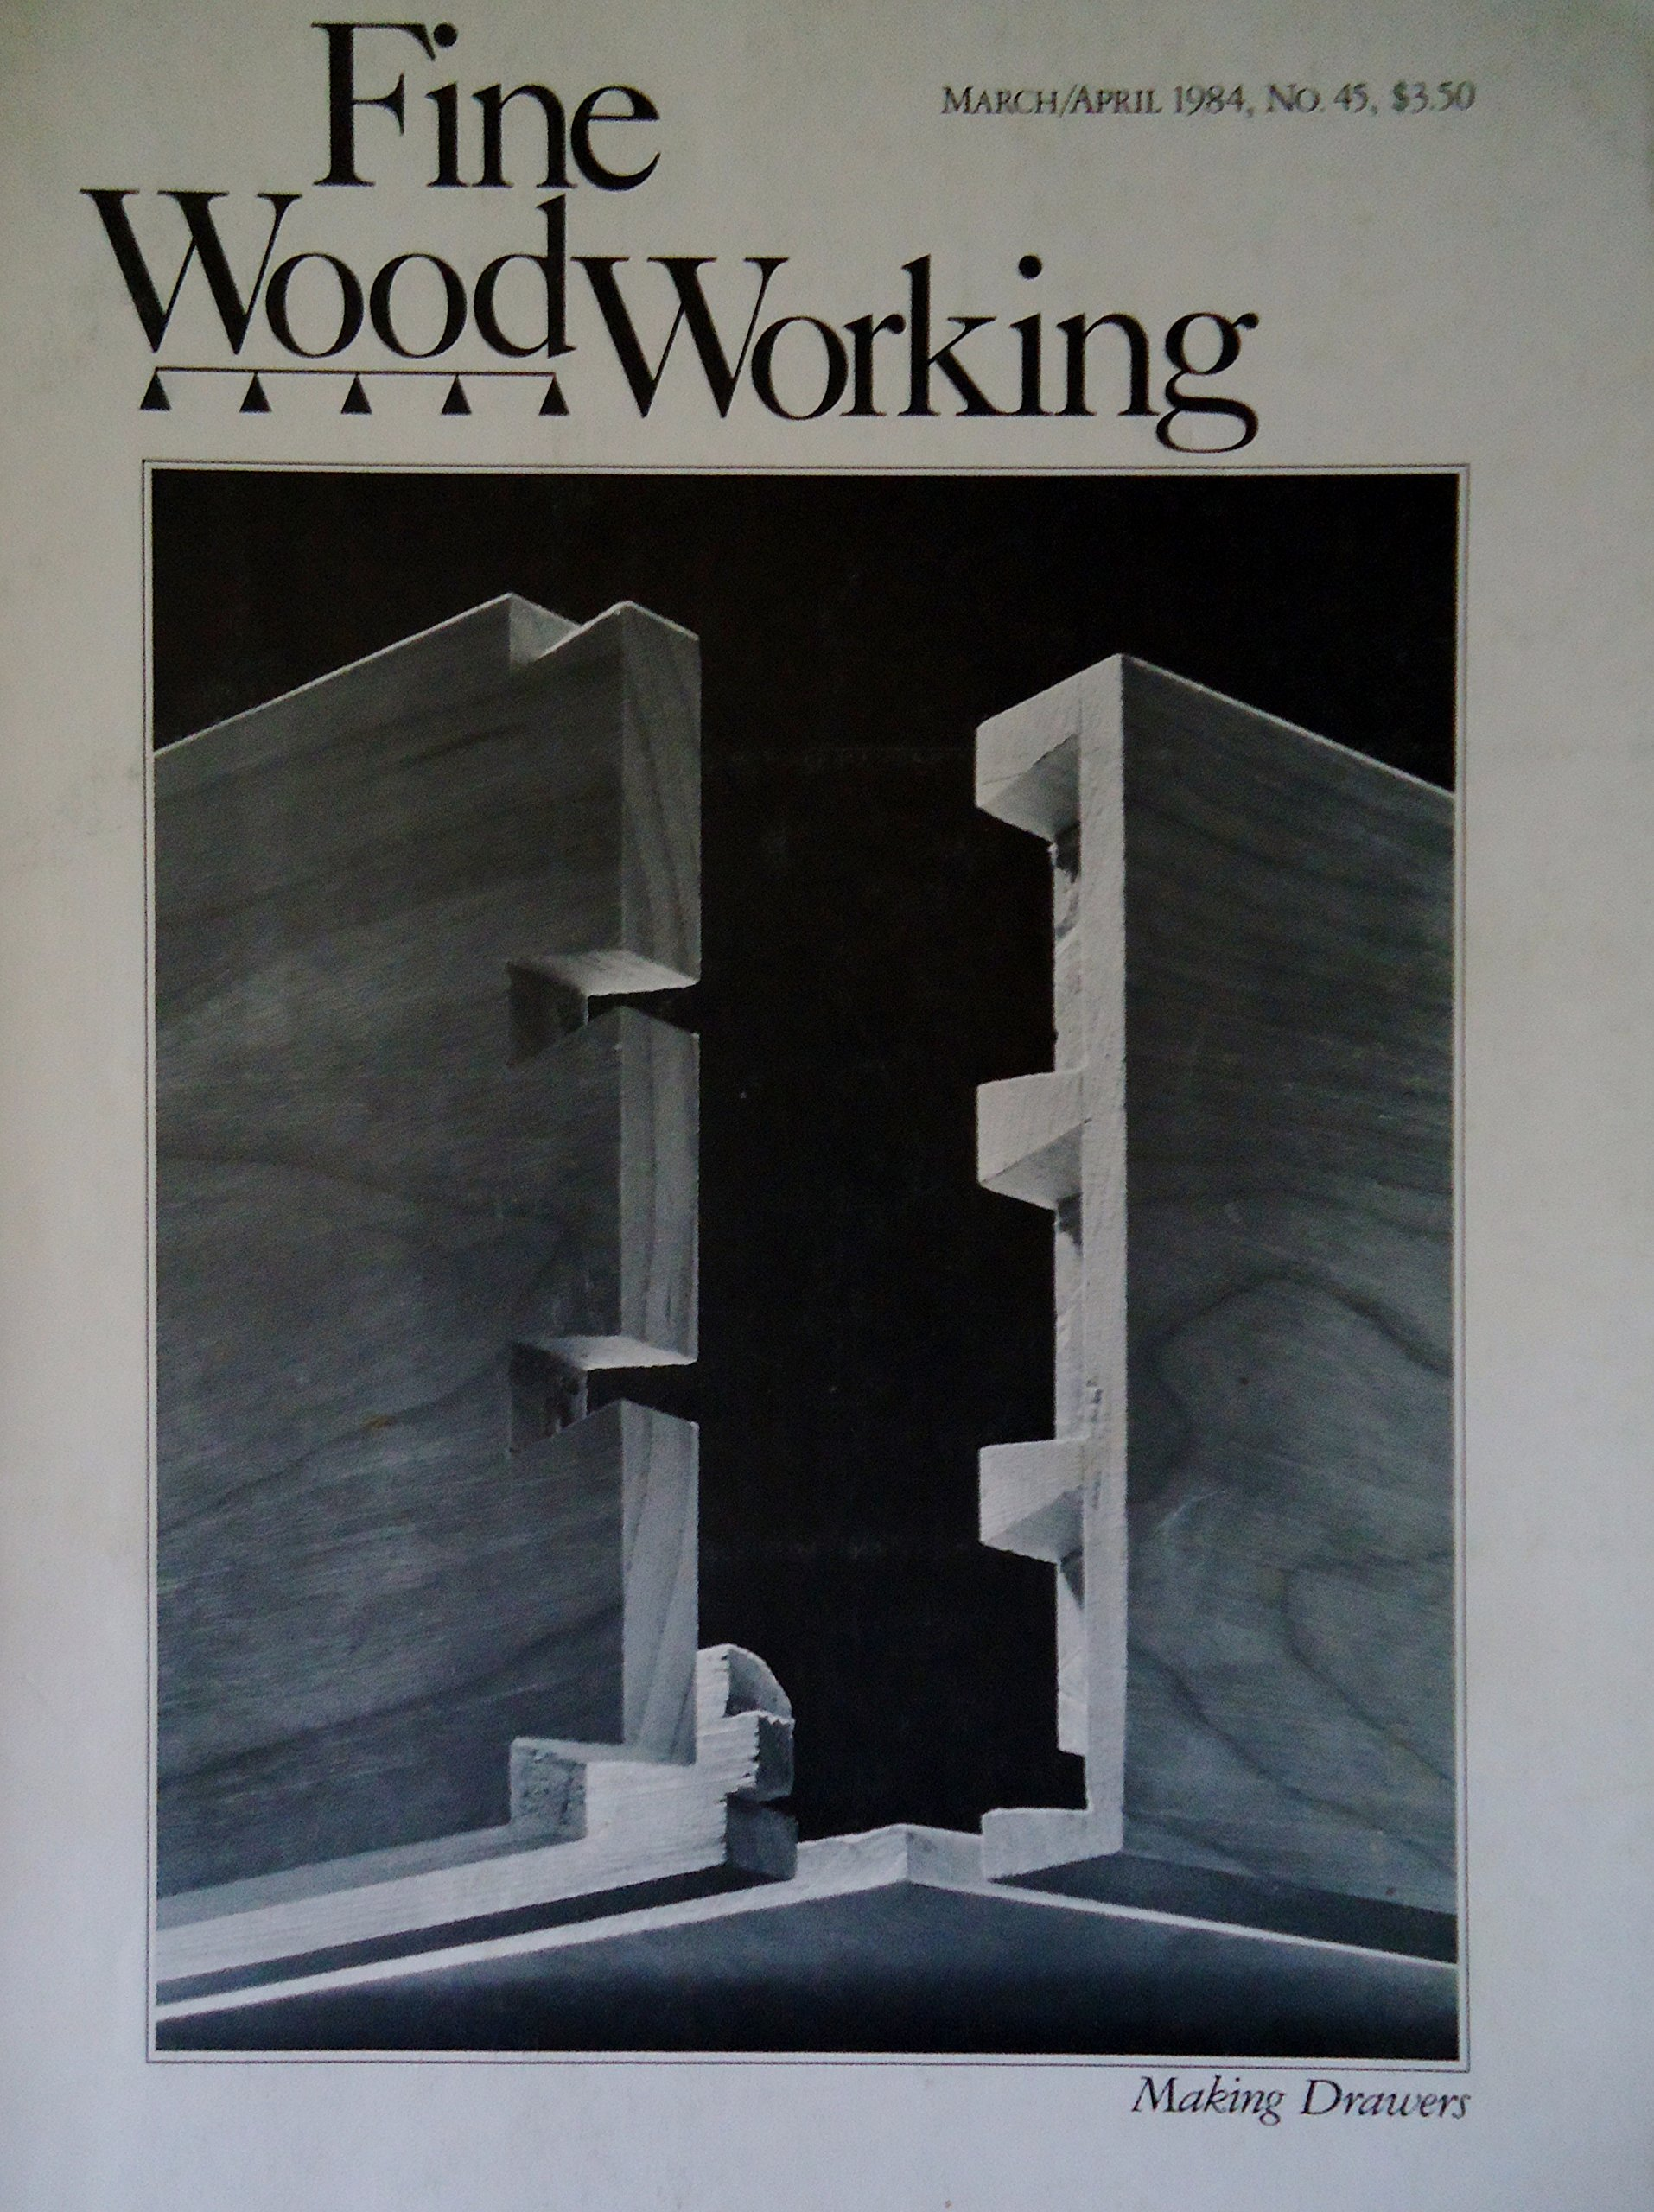 FINE WOODWORKING MAGAZINE March/April 1984, No. 45